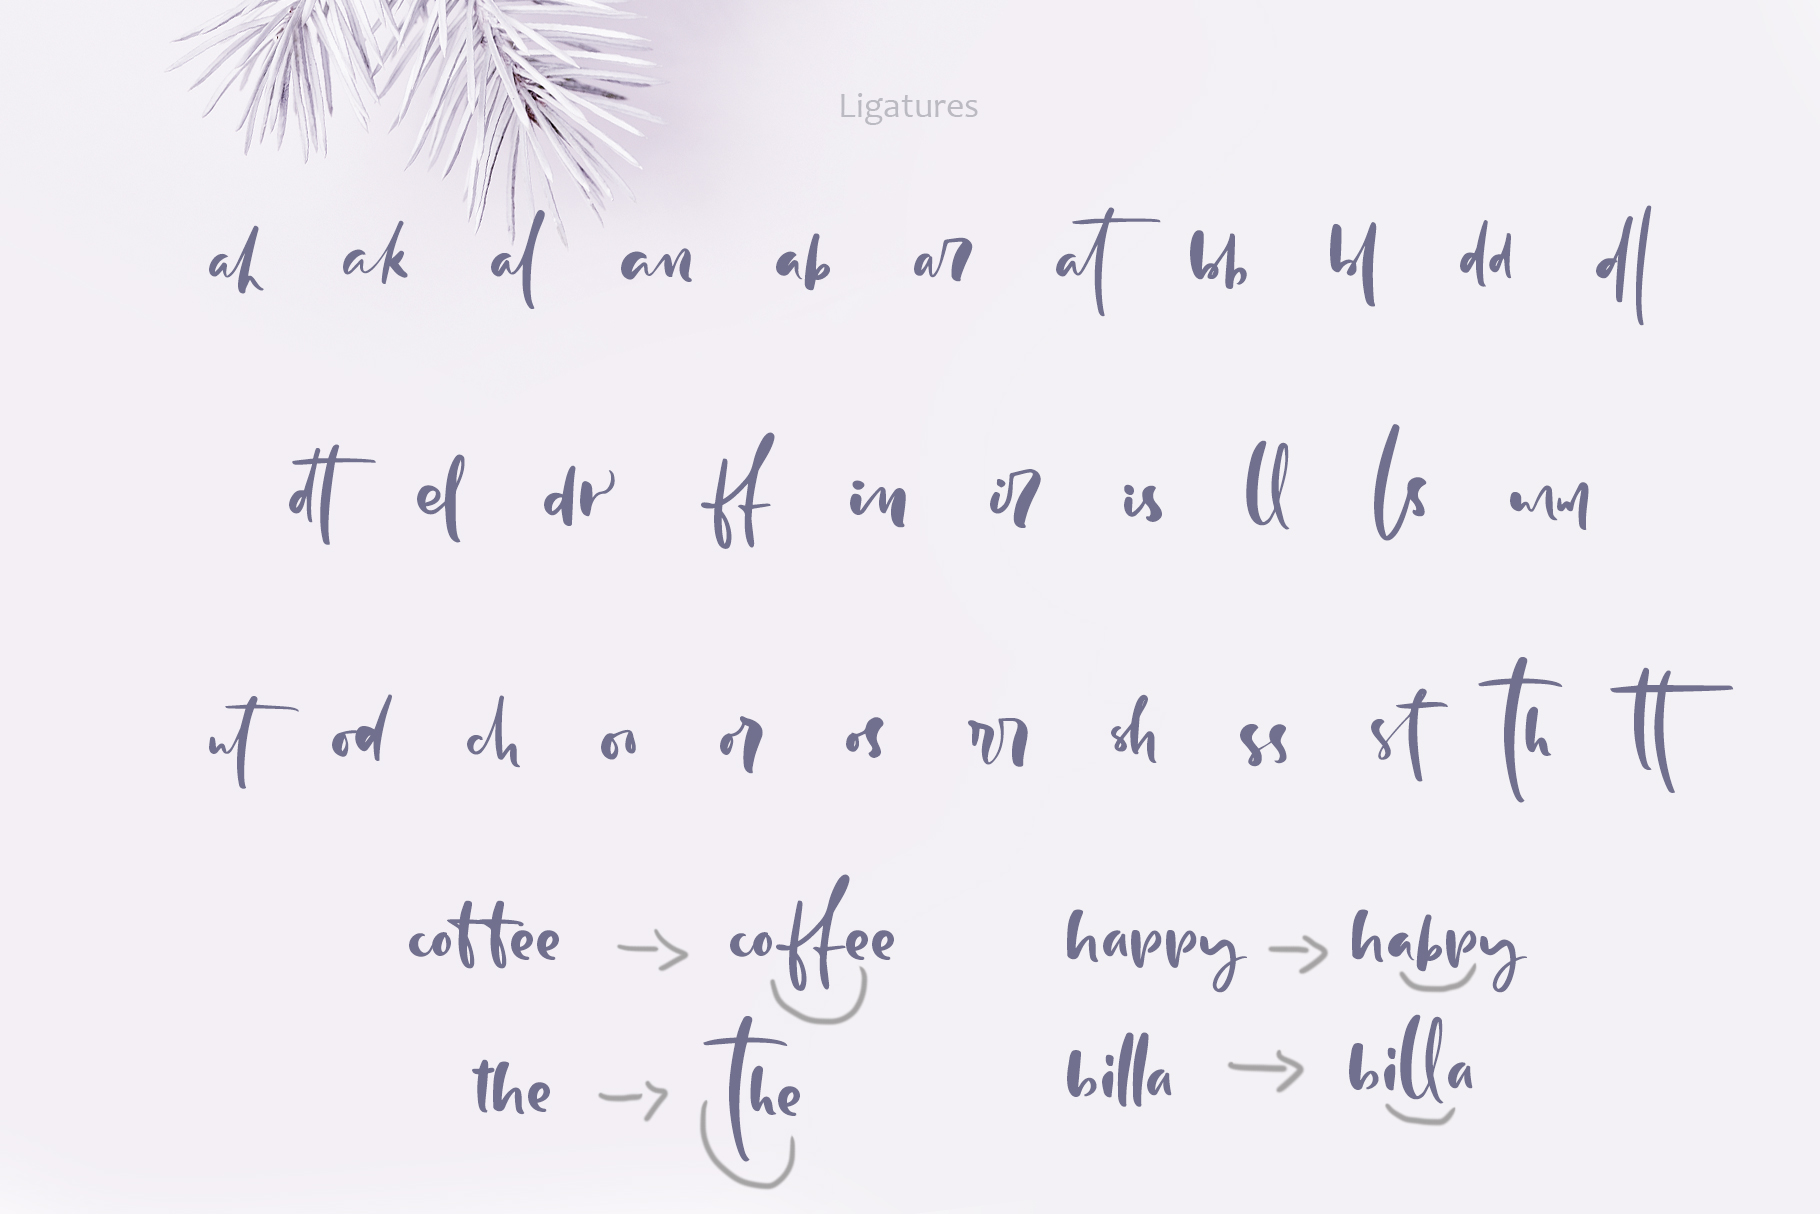 Holly Jolly Hand Drawn Font - $18 - title06